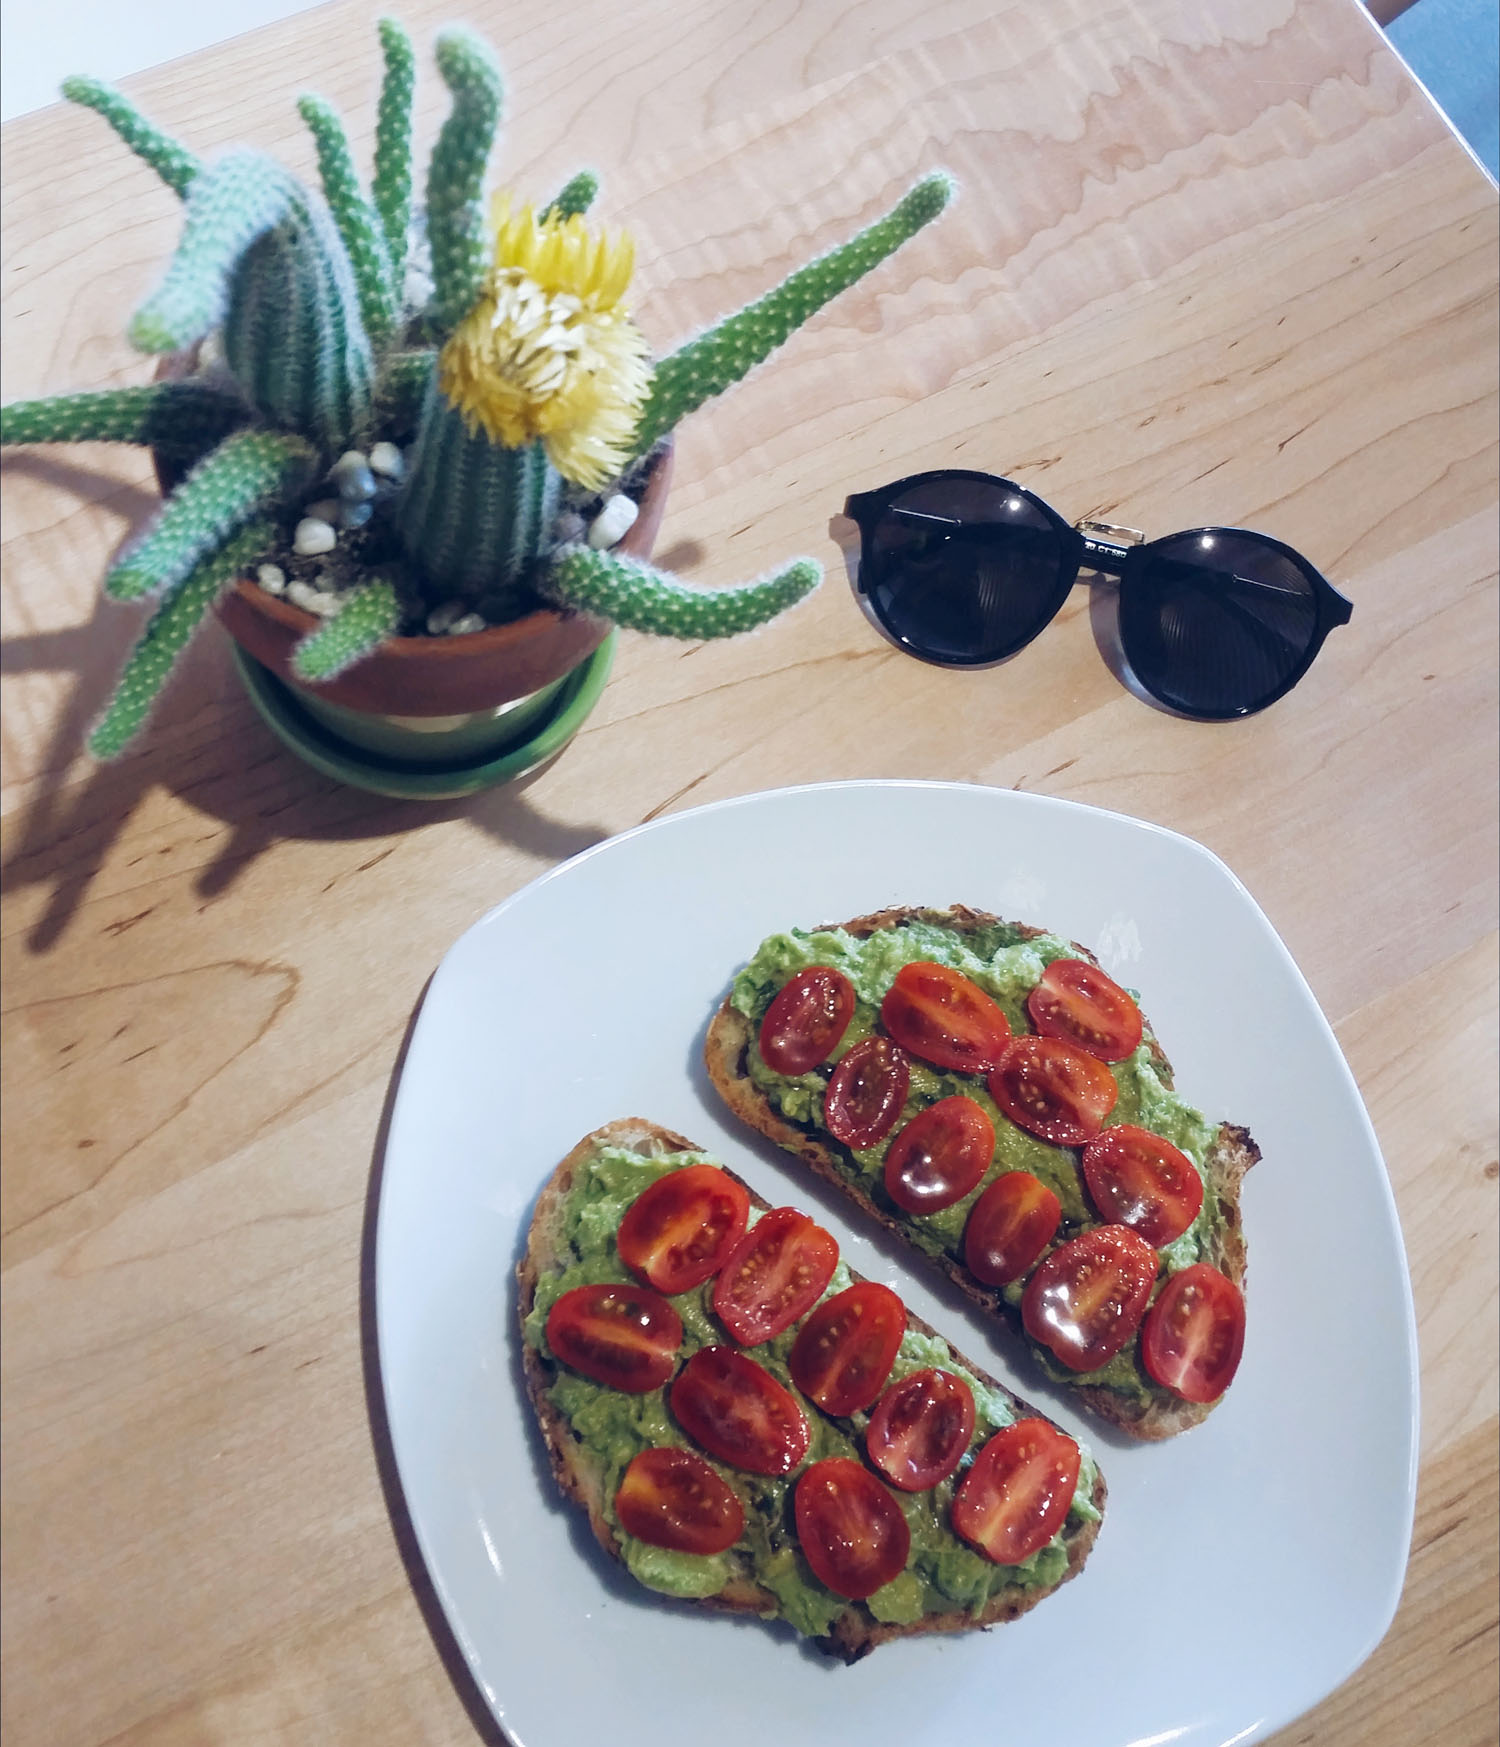 Avocado Toast Miami Vegan Spot Brickell